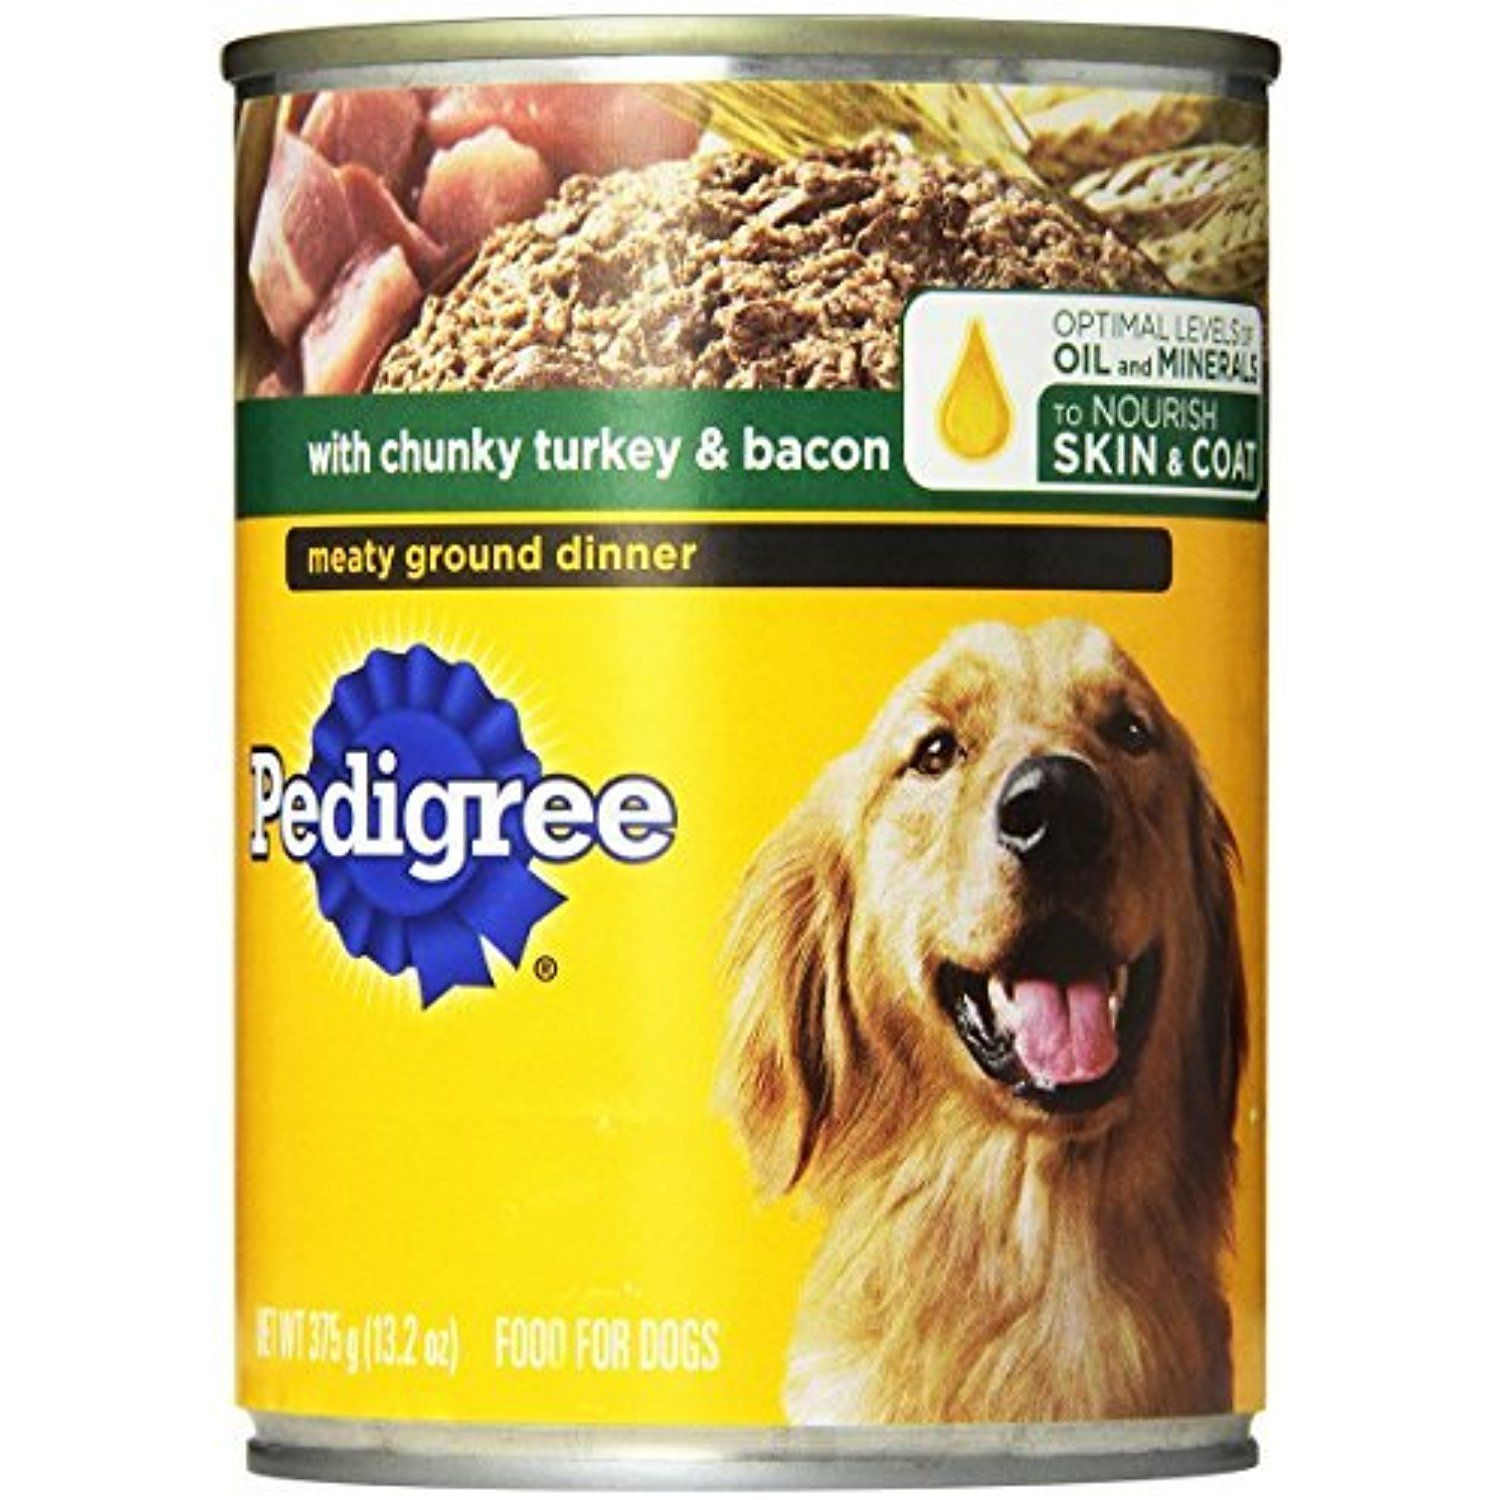 Pedigree Meaty Ground Dinner With Chunky Turkey And Bacon Canned